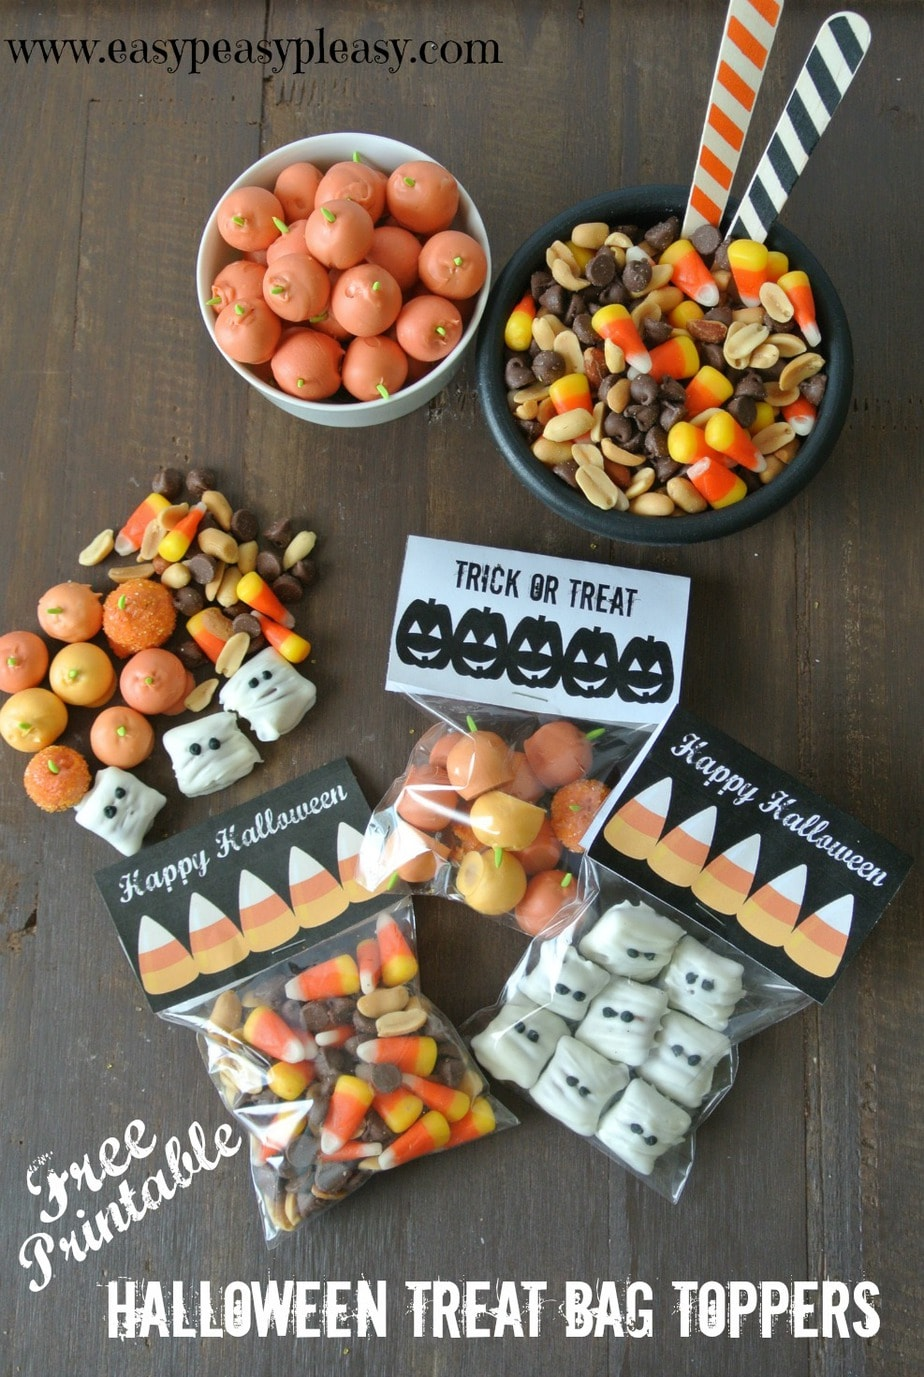 Free Printable Halloween Treat Bag Toppers are perfect for your Halloween treats!